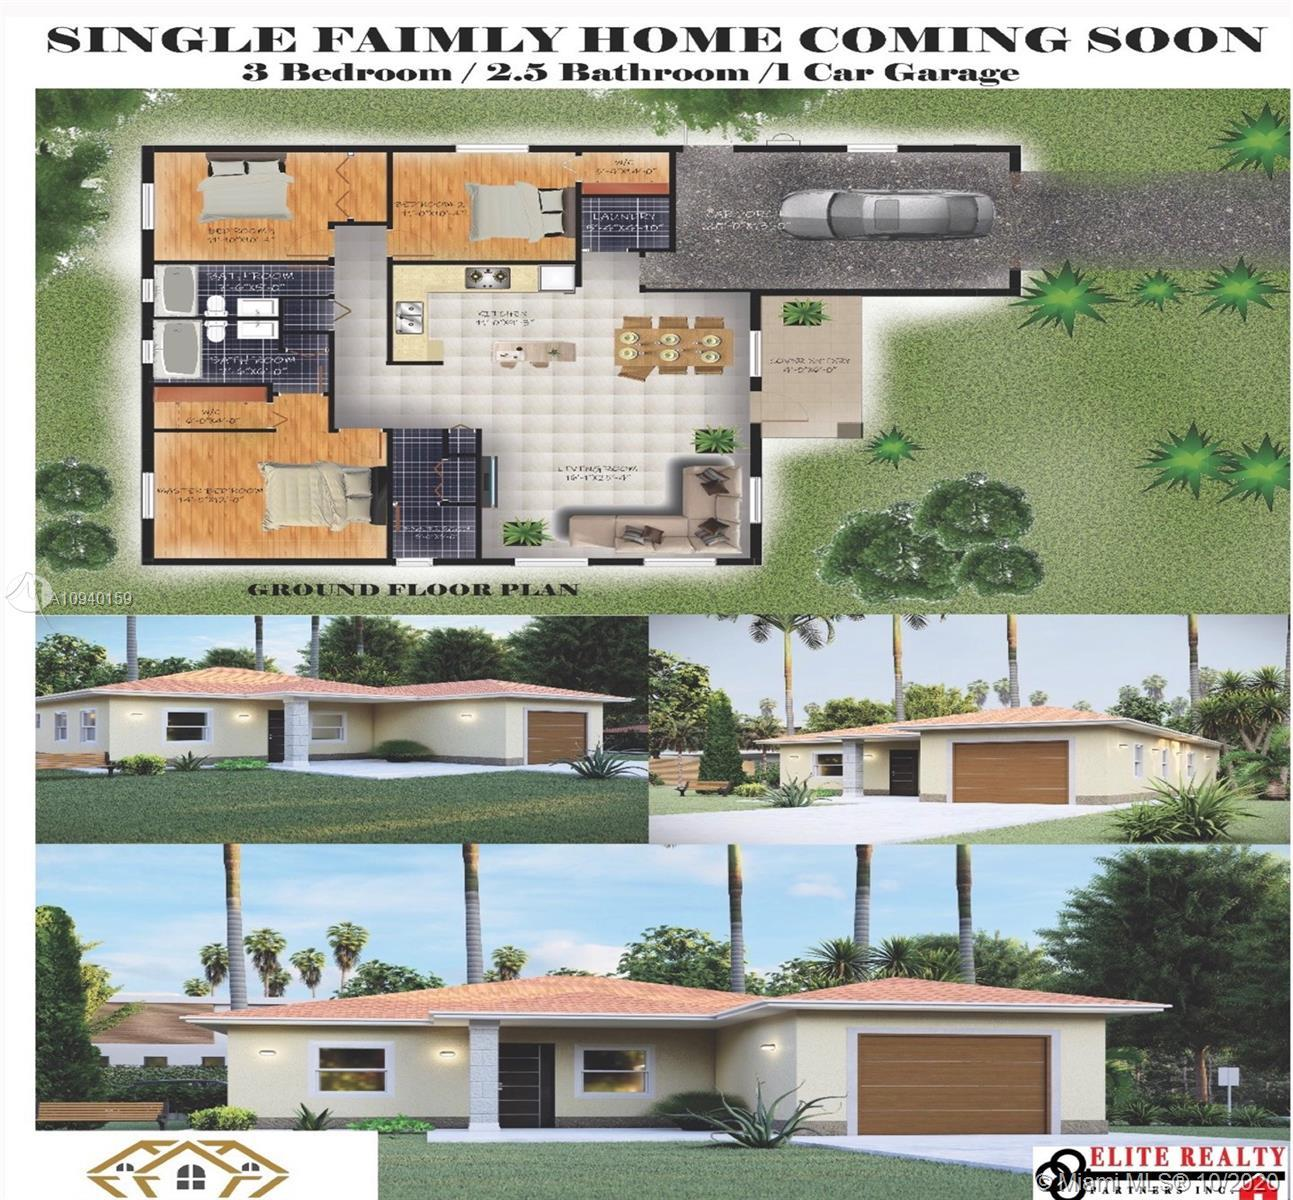 Ready for a New Owner! Amazing Brand New Construction Single Family Home! Consist of 3 Bedrooms 2.5